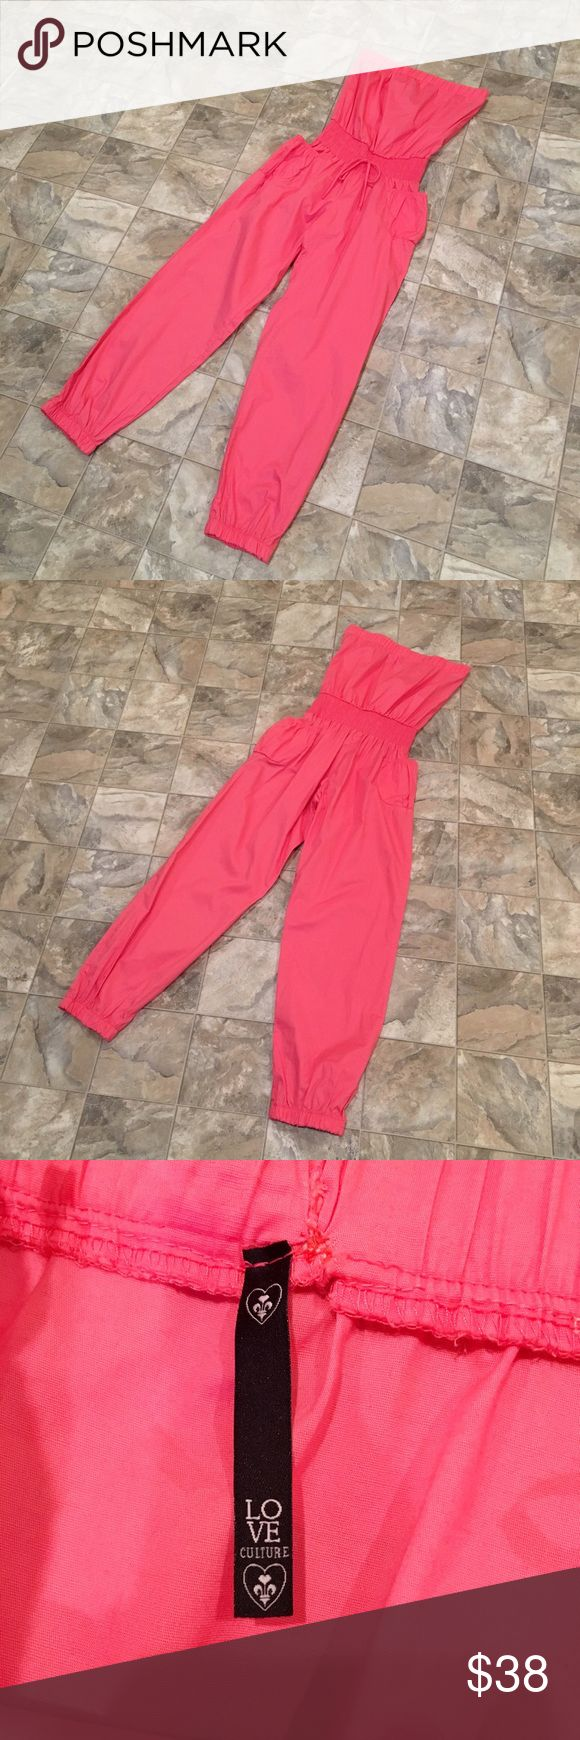 """LOVE CULTURE coral jumpsuit LOVE CULTURE coral strapless pant jumpsuit   stretchy waist   stretchy tapered bottoms   pockets on the sides   size S   inseam is 27""""   waist measures 10.75"""" across, is stretchy and stretches a few more inches   top measures 13.5"""" across, also stretchy and stretches a few more inches   had a tiny hole at the top in the back that was sewn up - not noticeable when worn! Love Culture Pants Jumpsuits & Rompers"""